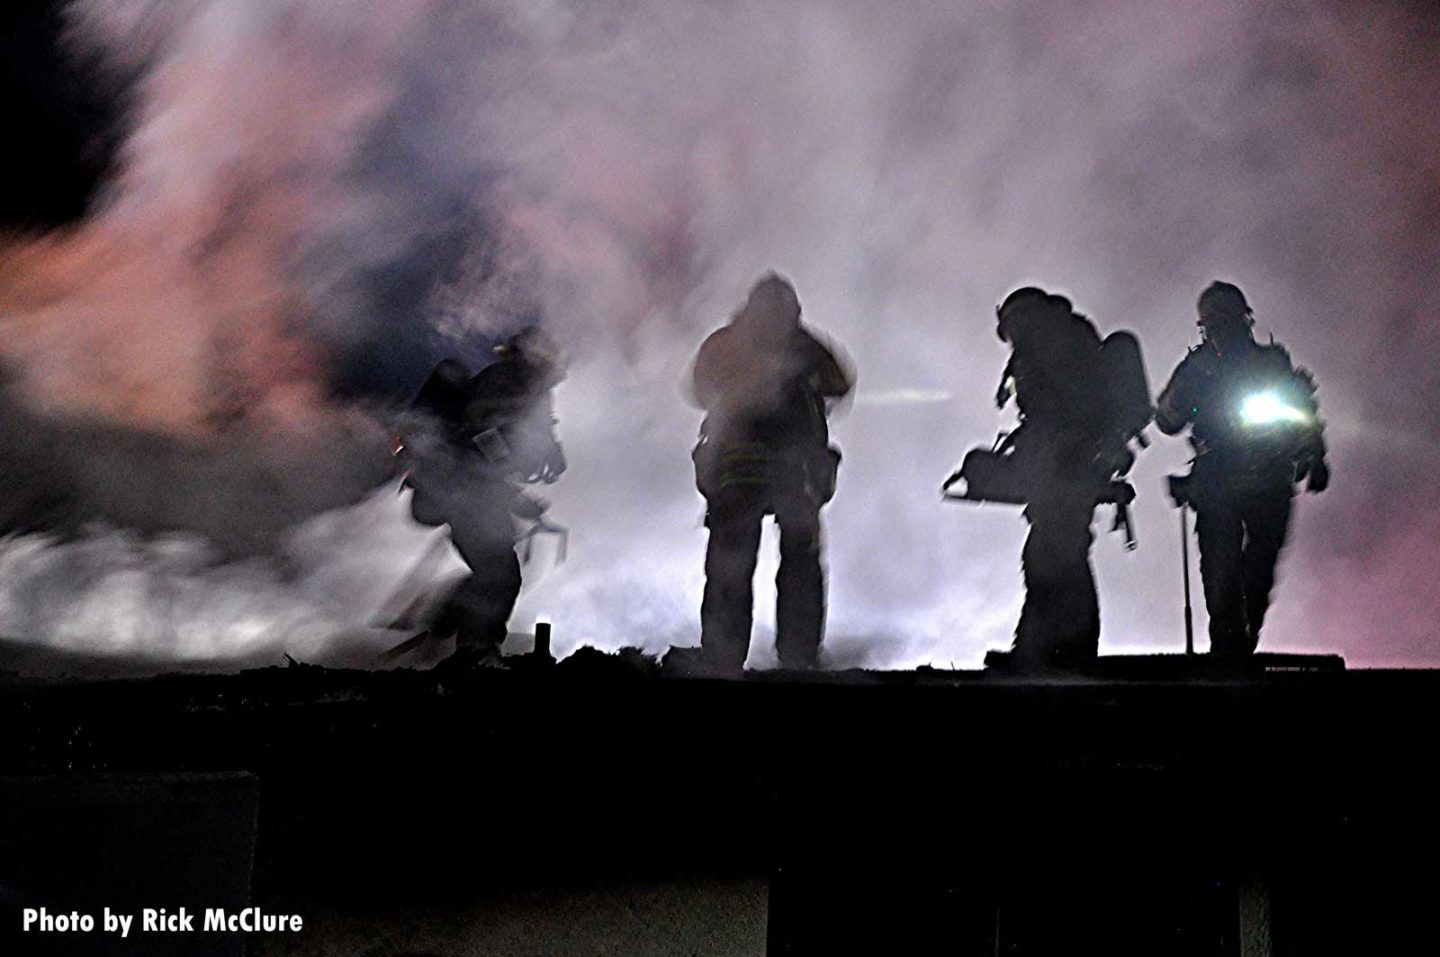 Firefighters working the roof silhouetted against smoke